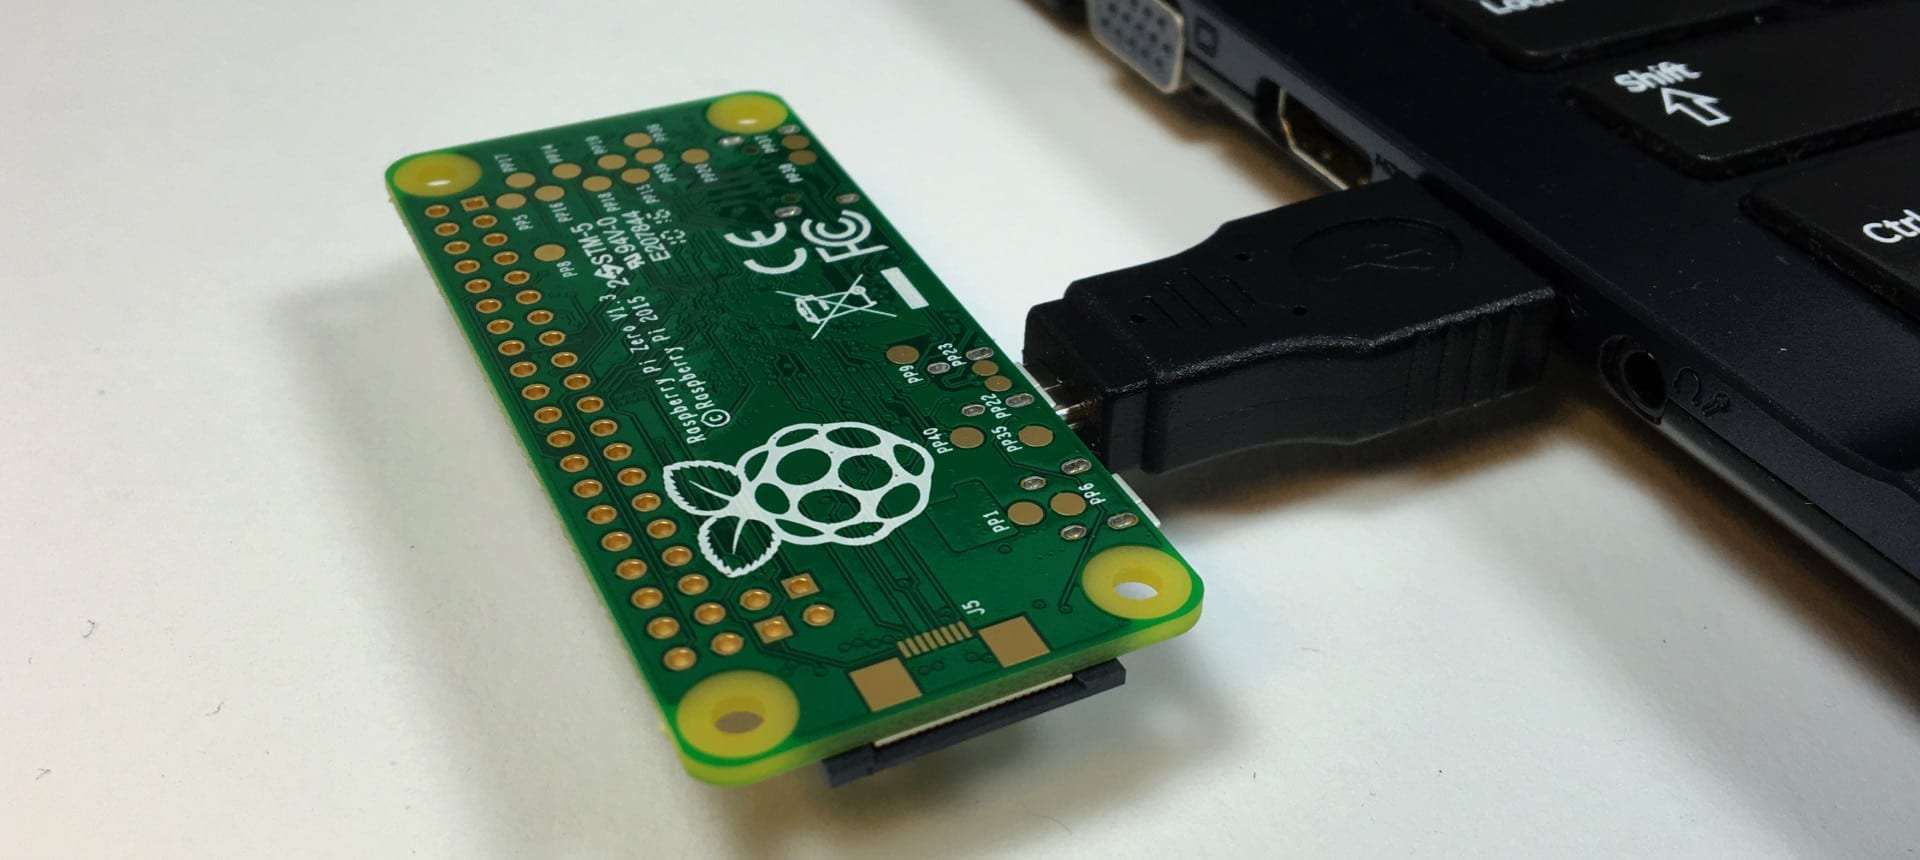 Raspberry Pi Zero Usb Ethernet Gadget Tutorial Circuit Basics Abquot And Quotcircuit Bcquot To Label The Left Right Circuits